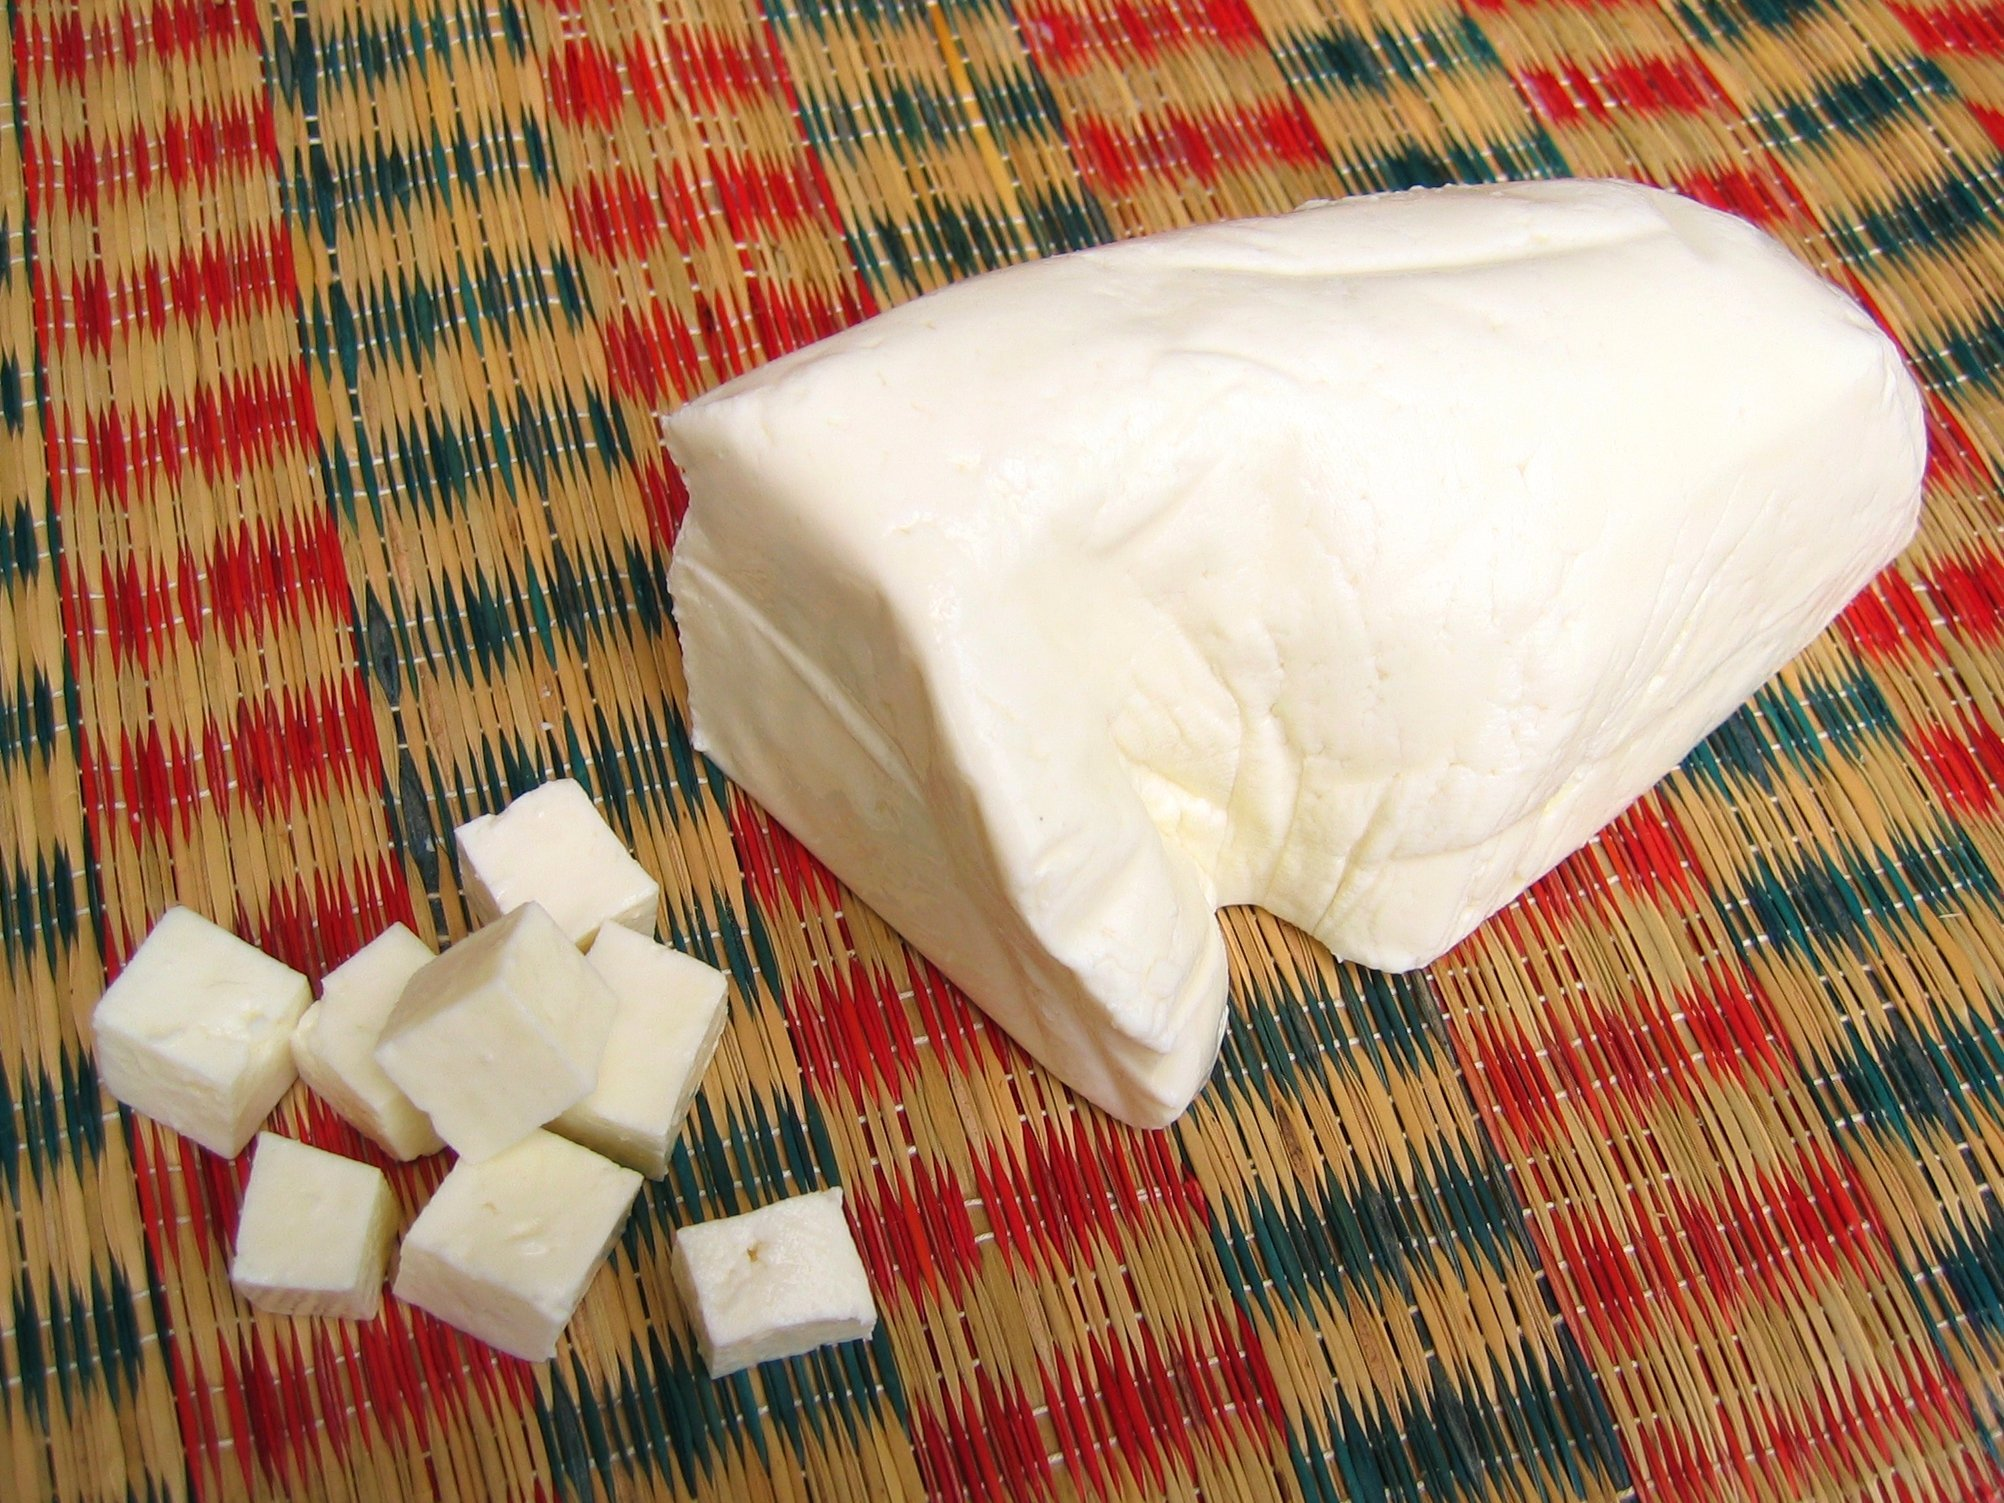 paneer manufacturing business